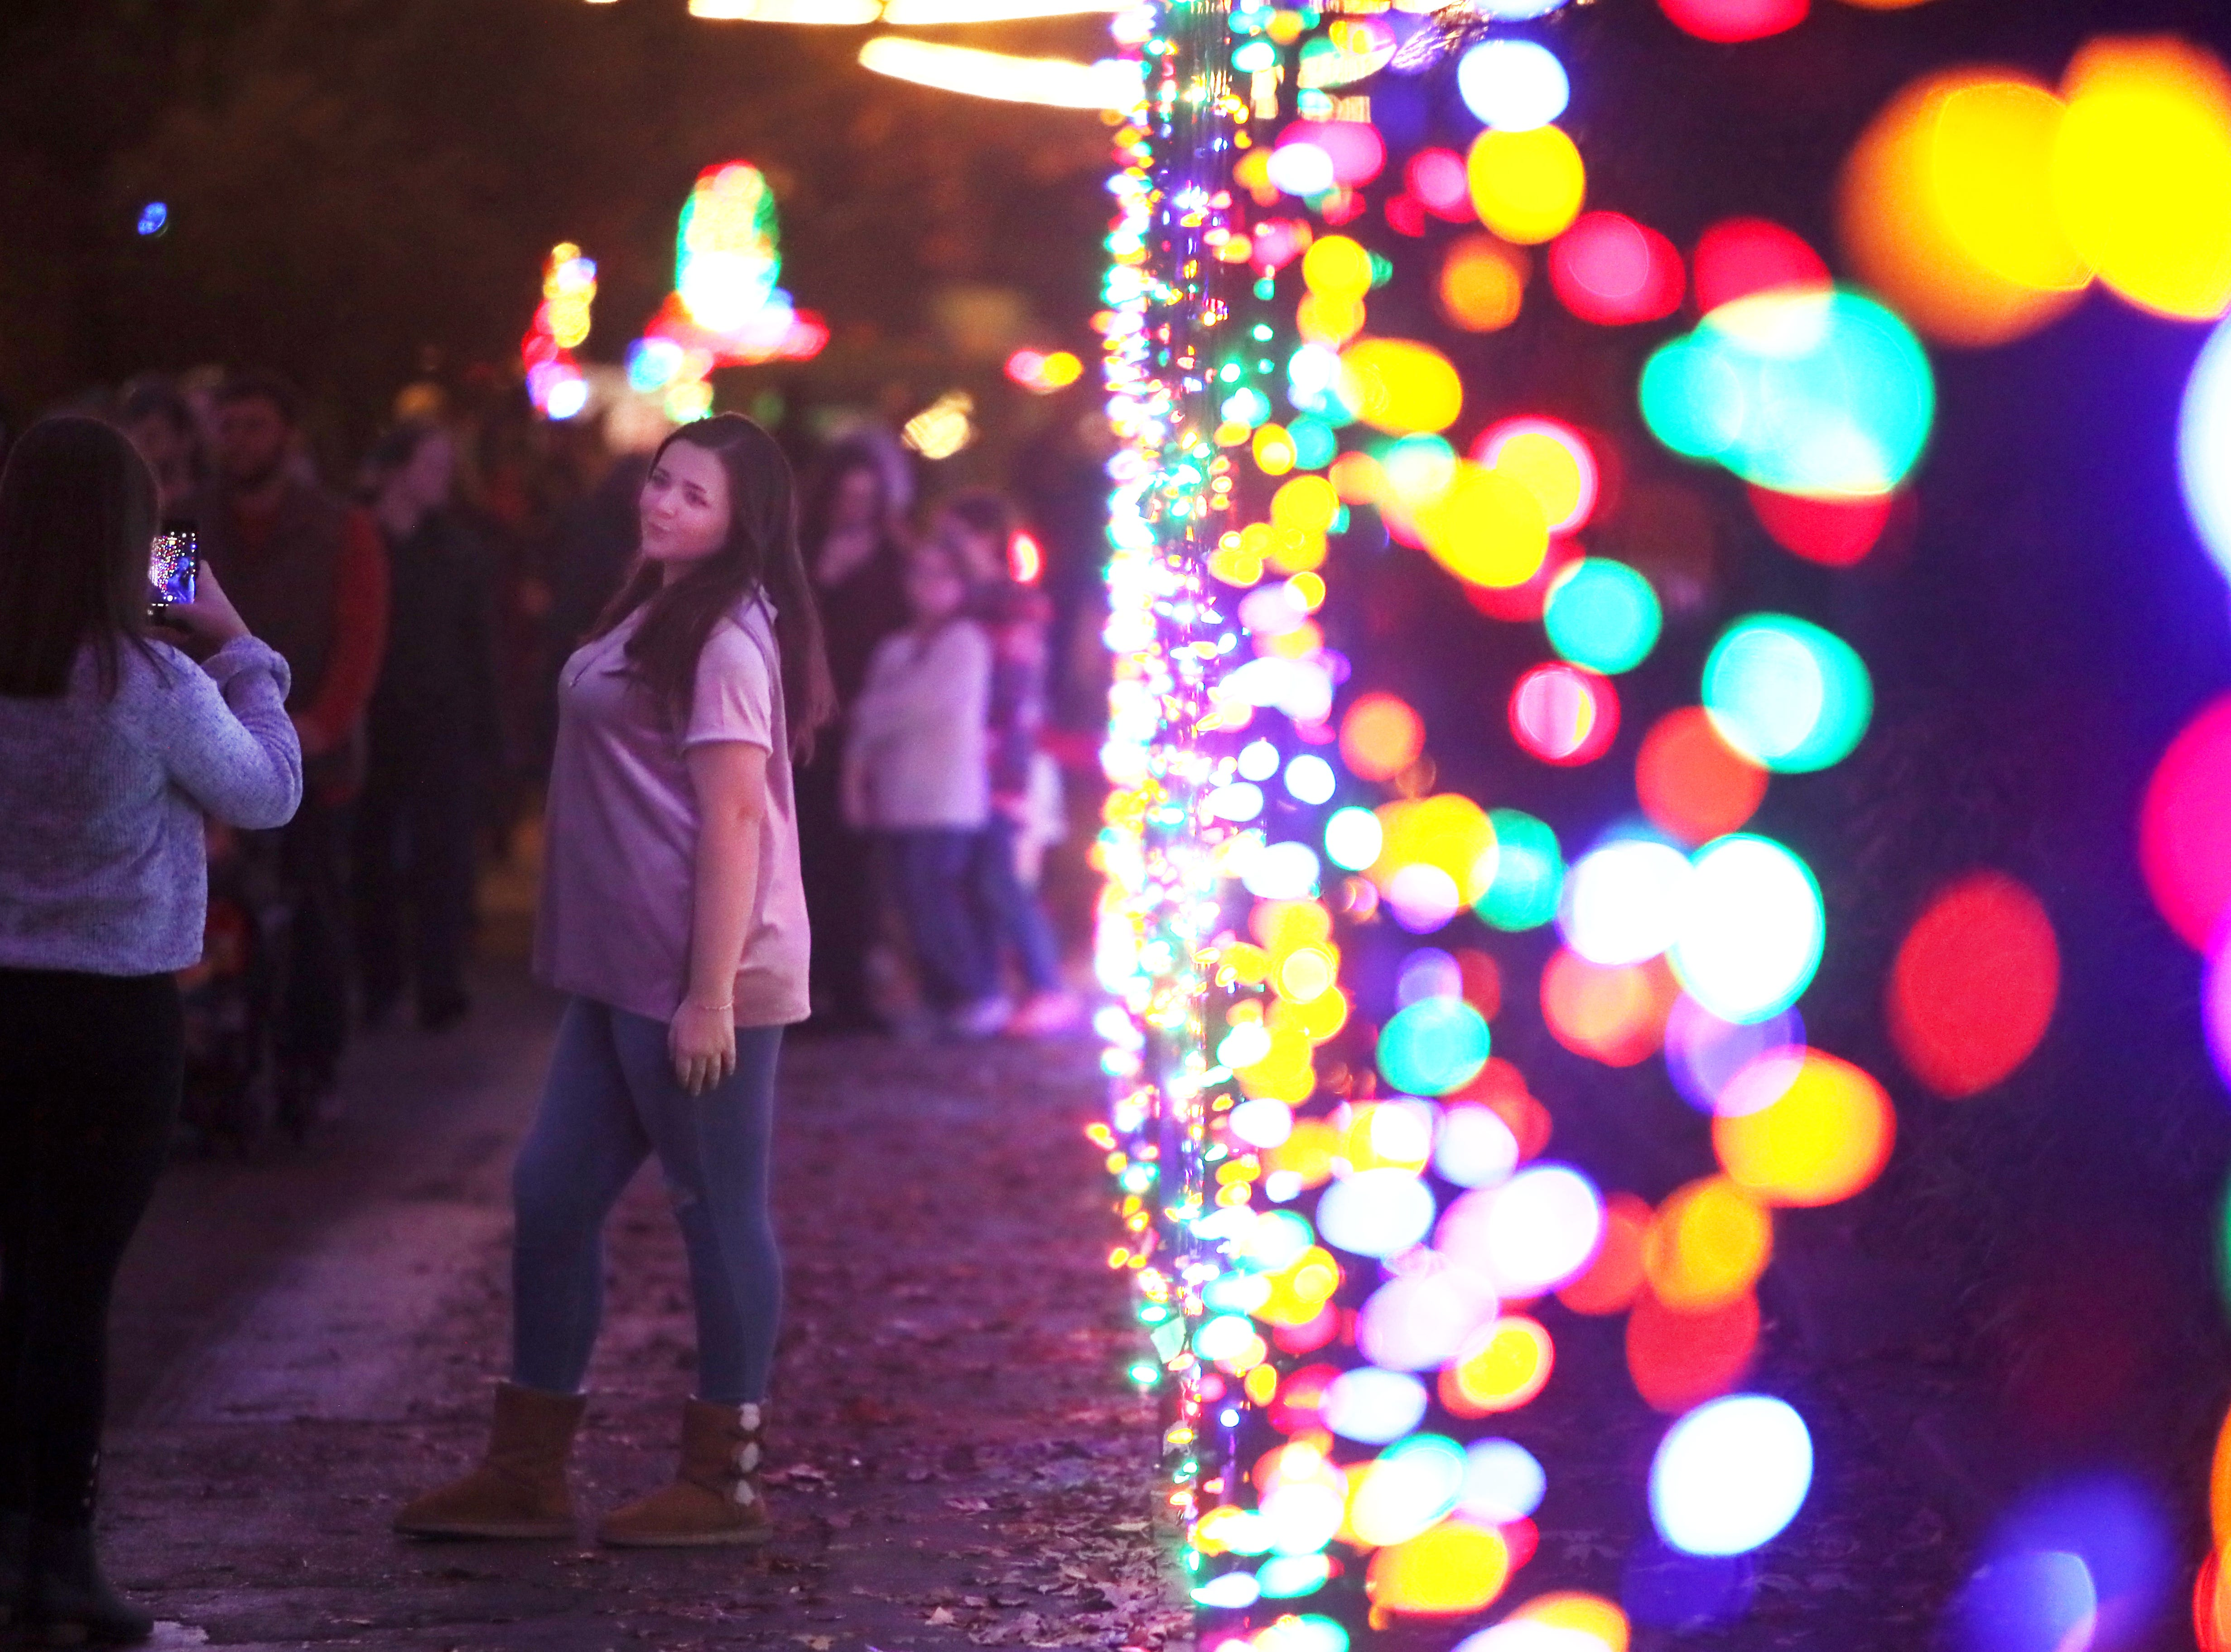 People walk through a lit tunnel at Zoo Lights, a holiday season themed event at the Memphis Zoo Saturday, Nov. 24, 2018.